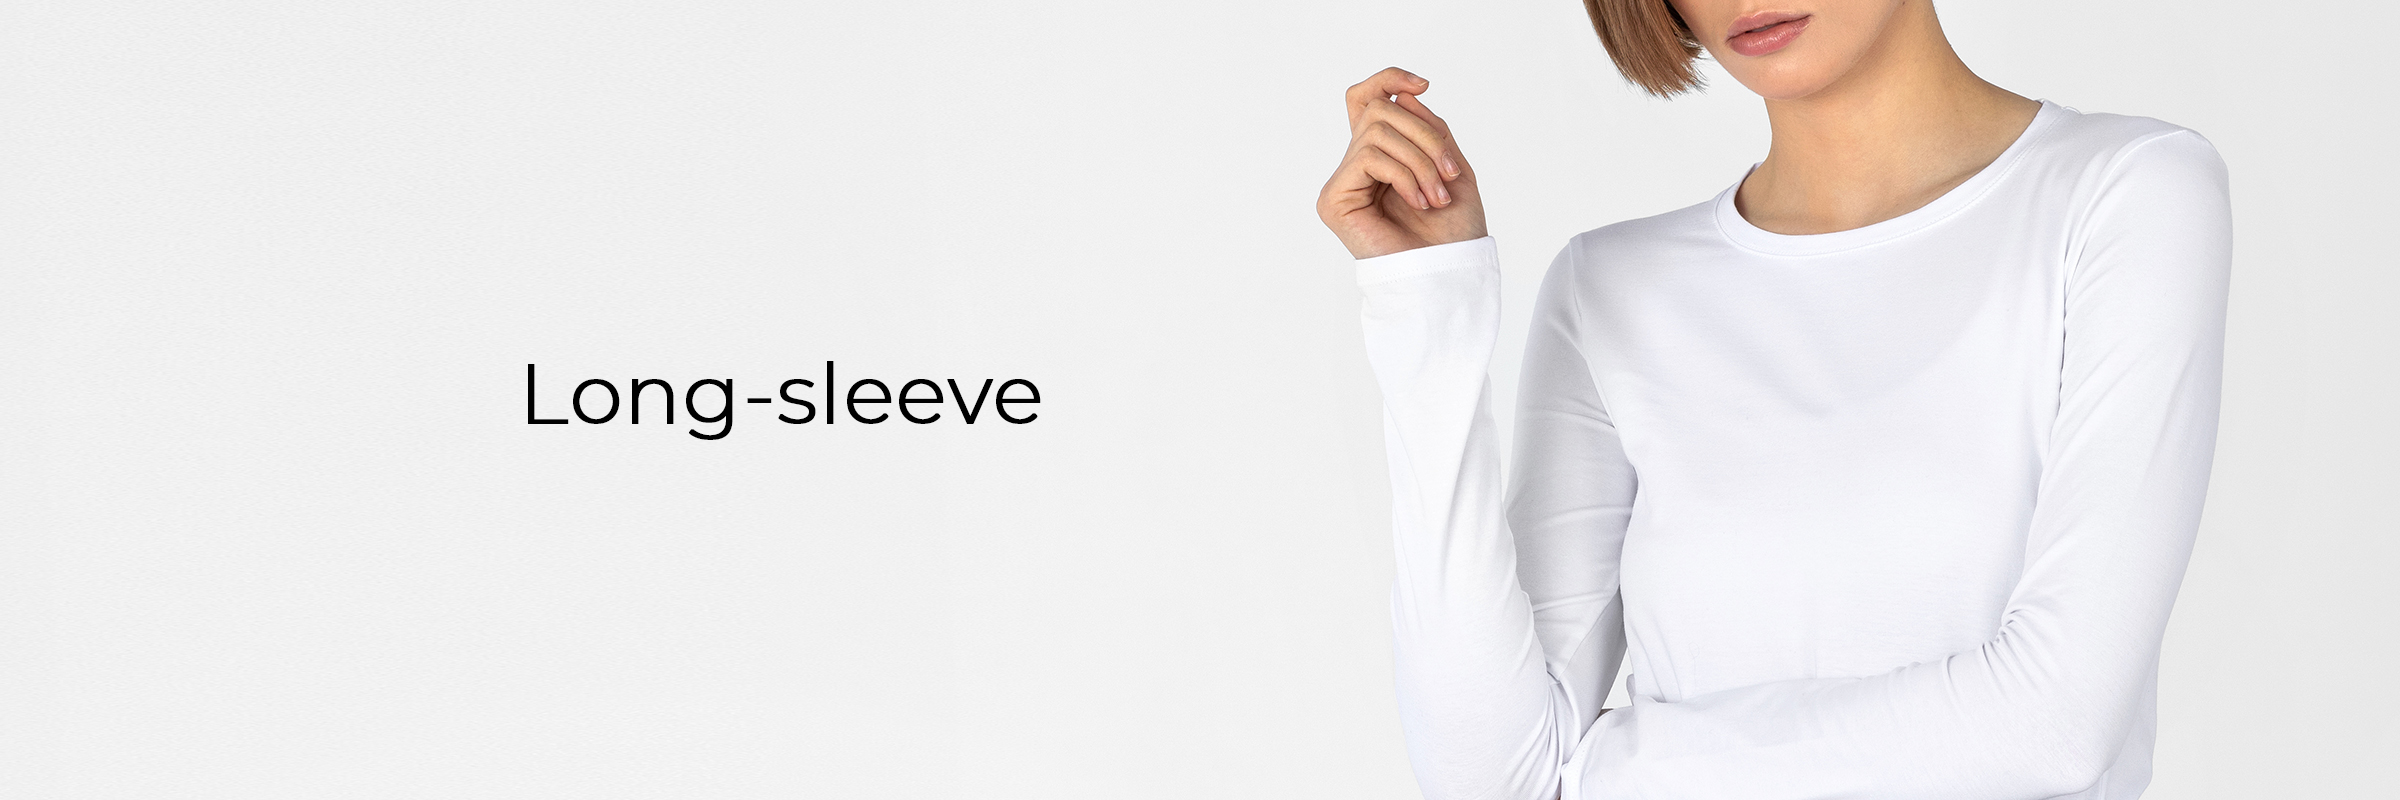 long-sleeve women's collection banner